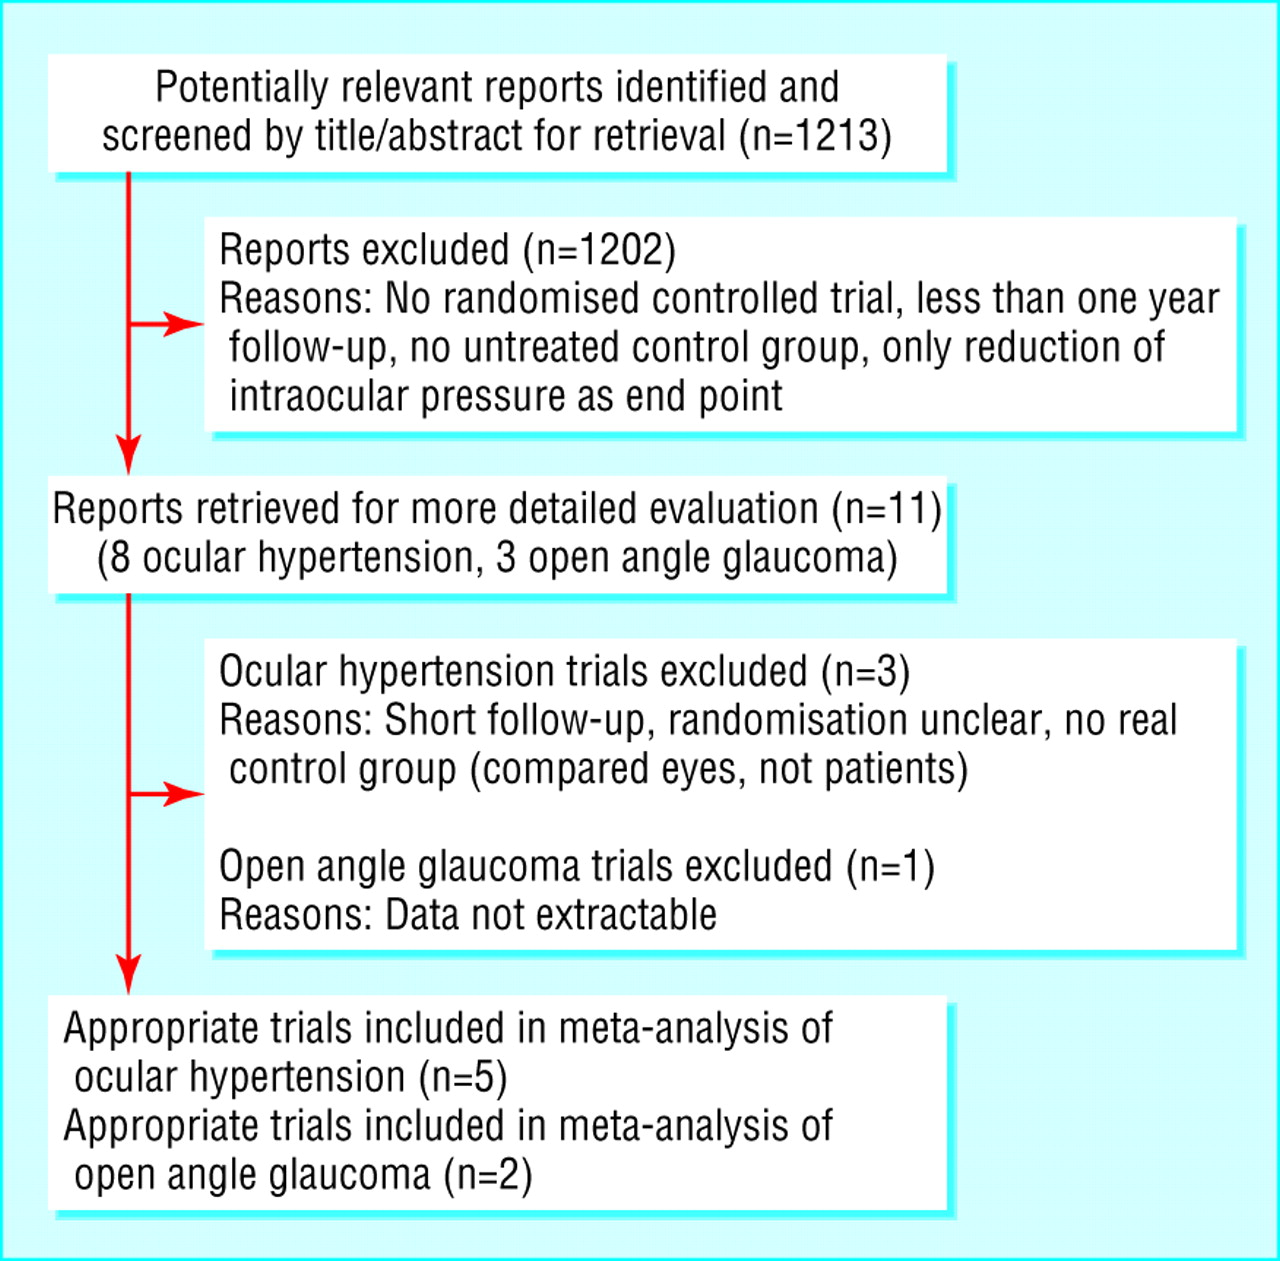 an analysis of hypertension Patient and healthcare provider barriers to hypertension awareness, treatment and follow up: a systematic review and meta-analysis of qualitative and quantitative studies.